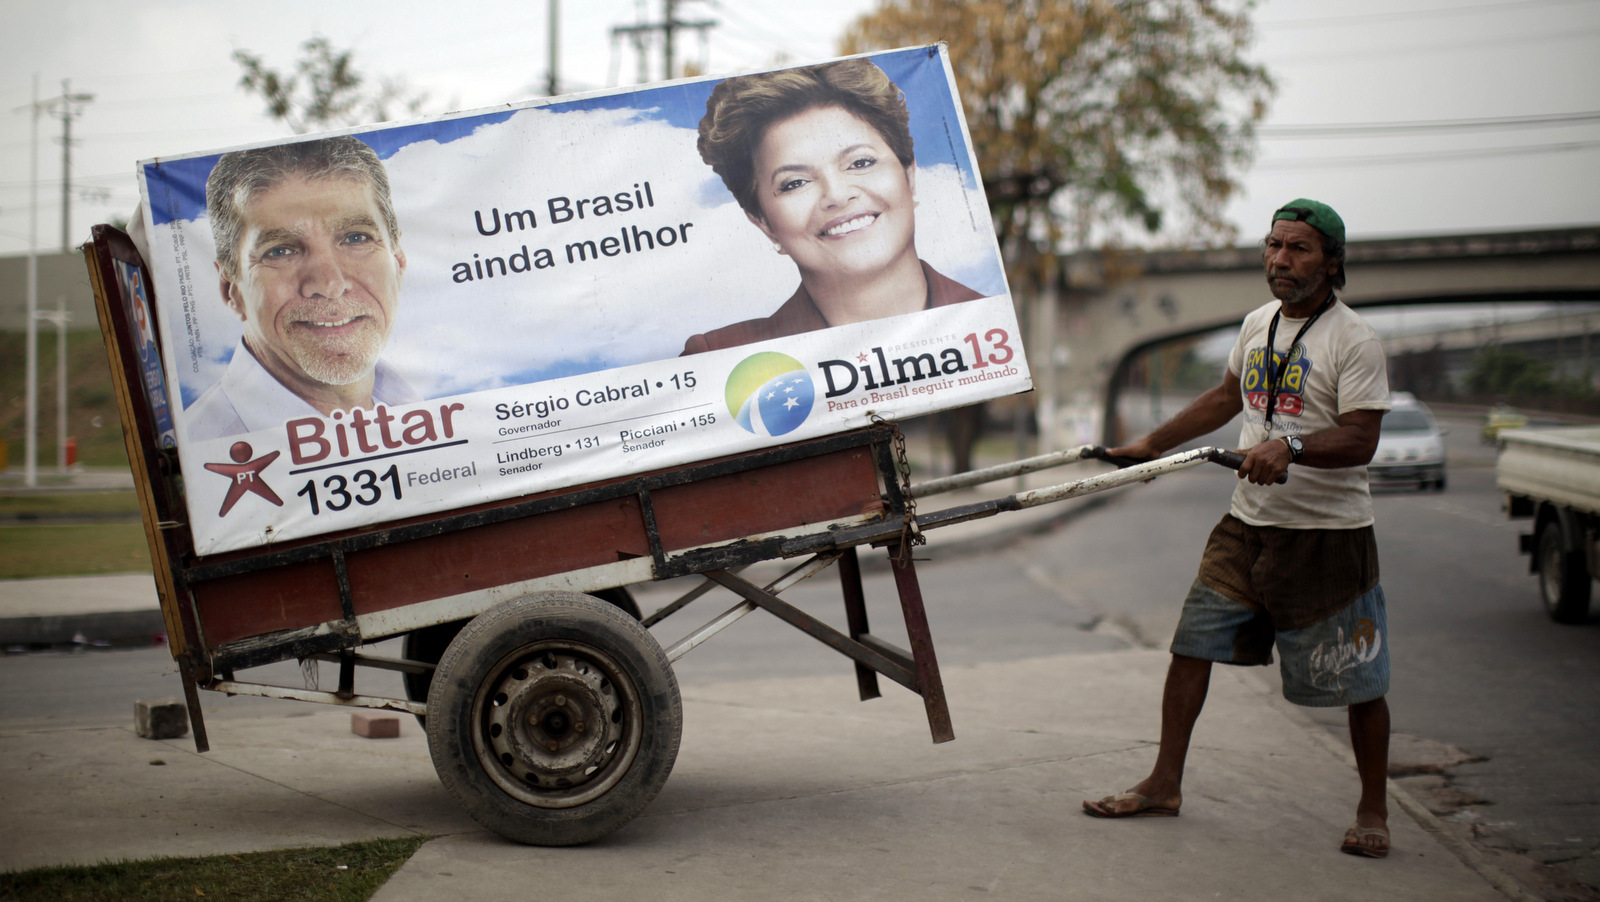 A man pulls a cart with an electoral poster of Workers Party presidential candidate Dilma Rousseff, right, at Manguinhos slum in Rio de Janeiro, Brazil, Wednesday, Sept. 29, 2010. (AP/Felipe Dana)